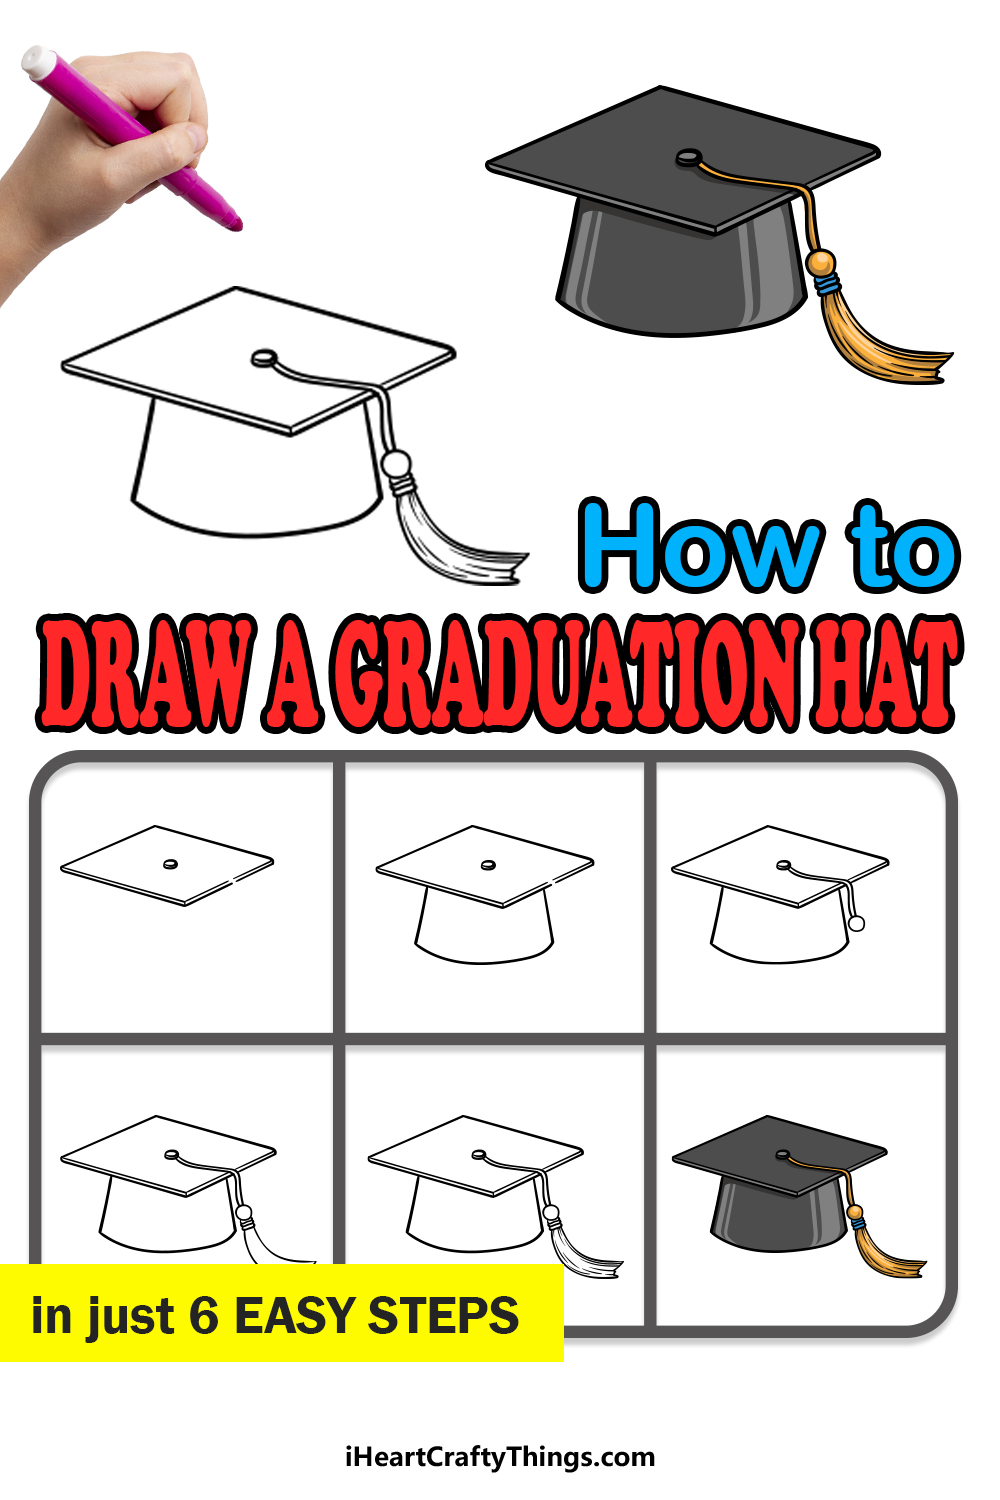 how to draw a Graduation Hat in 6 easy steps